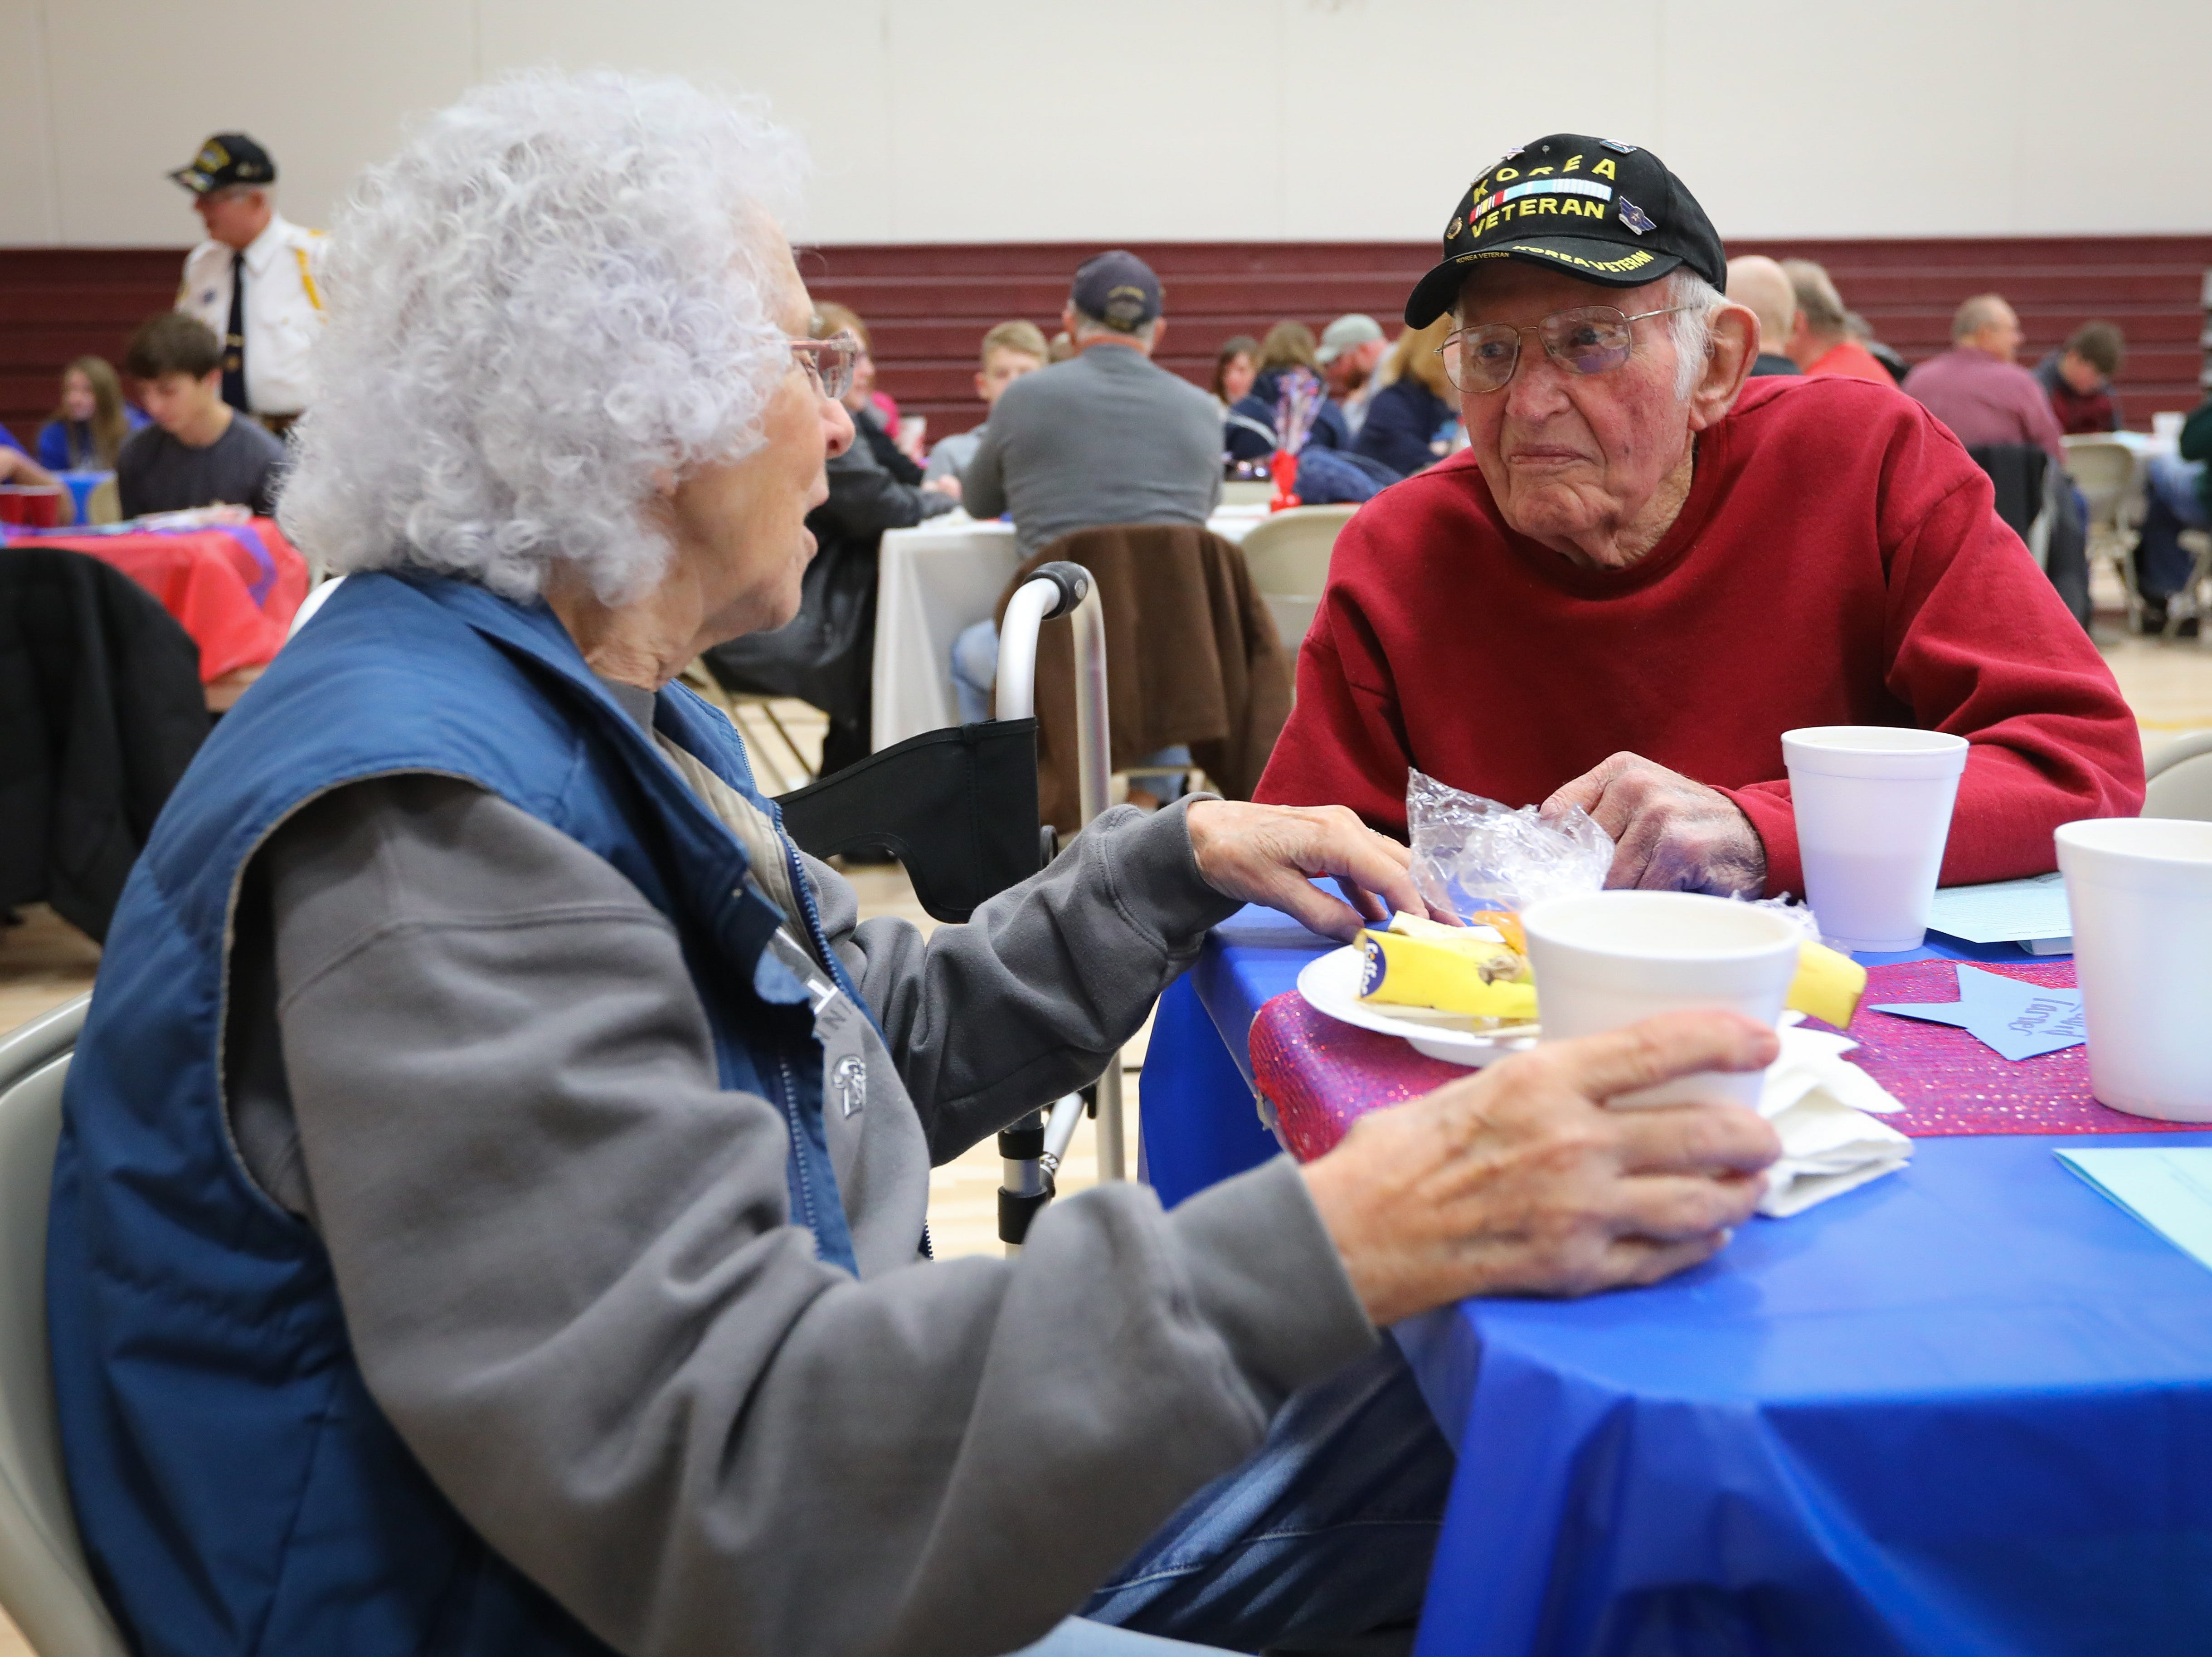 Paul Friedel, who served in the Air Force, talks during Veterans Day Breakfast at Northview Middle School on Wednesday, Nov. 14, 2018 in Ankeny, Iowa.